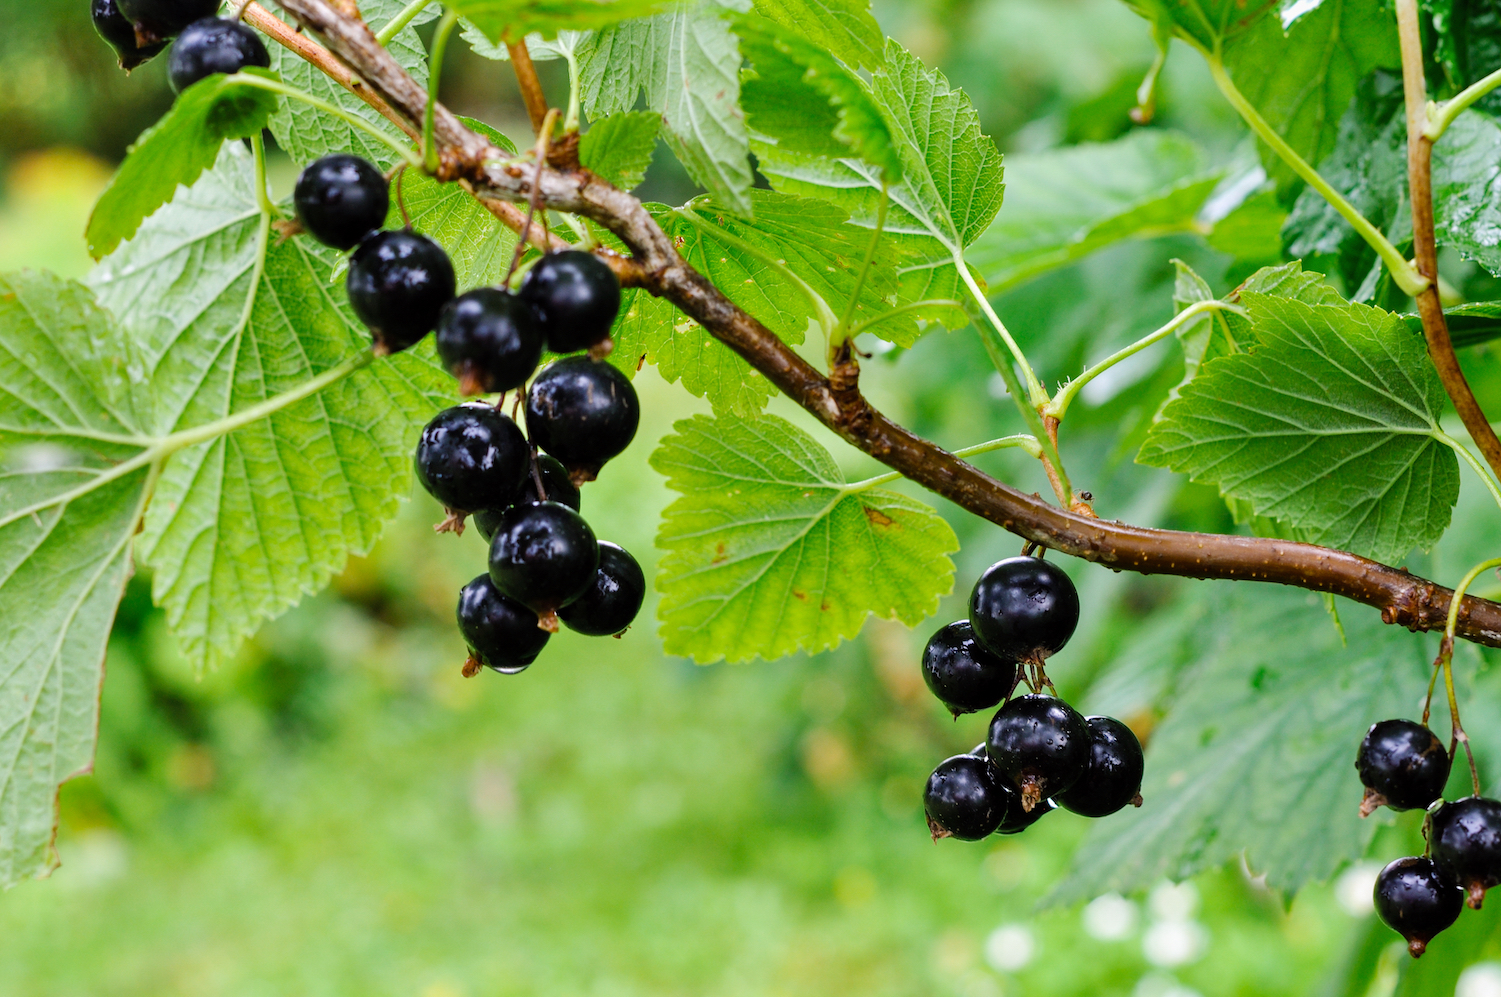 A team of experts from the University of Leeds have used natural dye extracted from blackcurrant waste to develop an effective new technology for coloring hair.